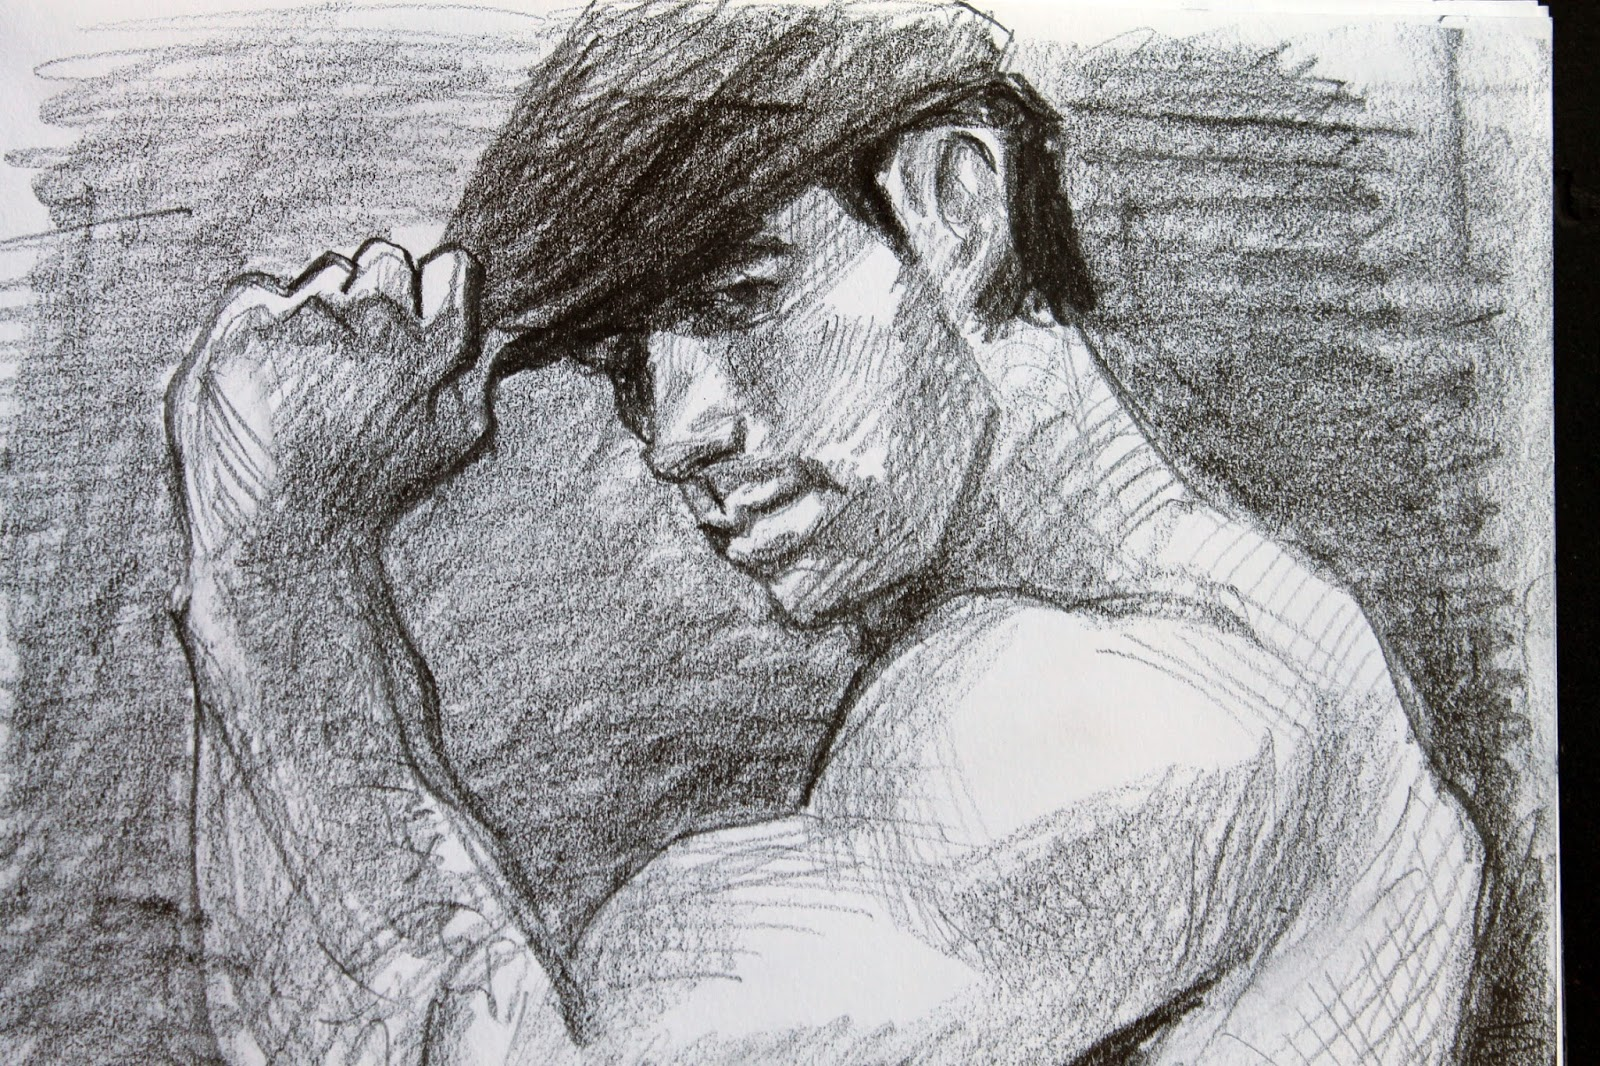 The hot irish guy he met on the heath pencil on paper 9 x 12